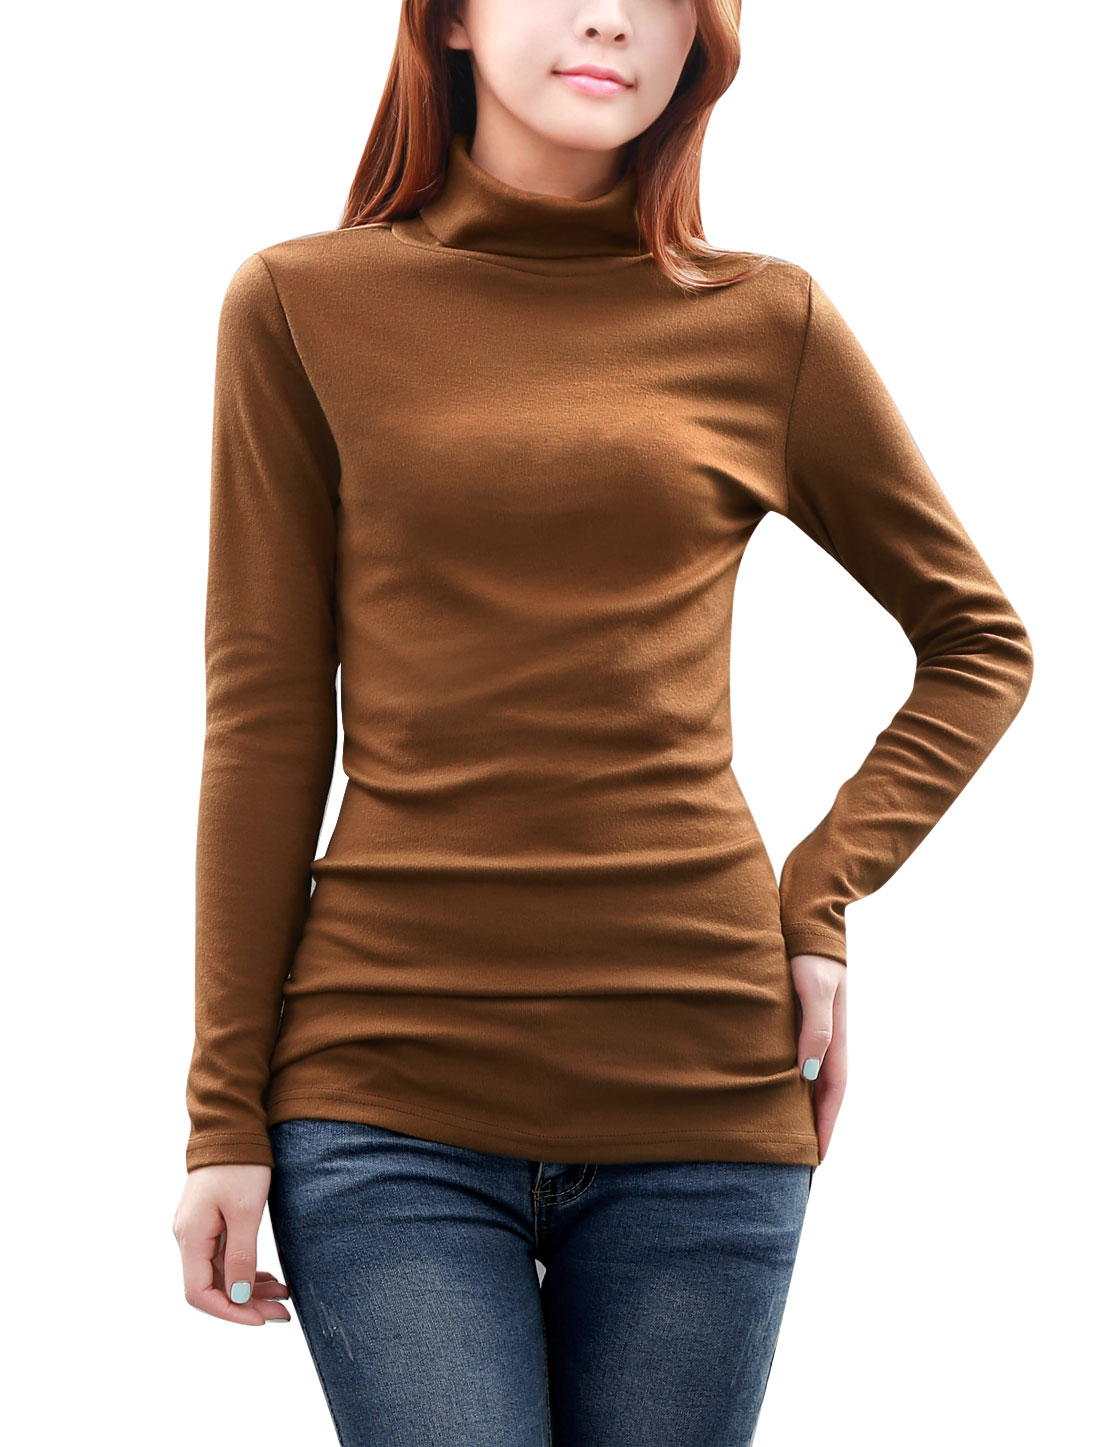 Ladies Long Sleeve Turtle Neck Wrap Back Stretch Khaki Autumn Blouse XS